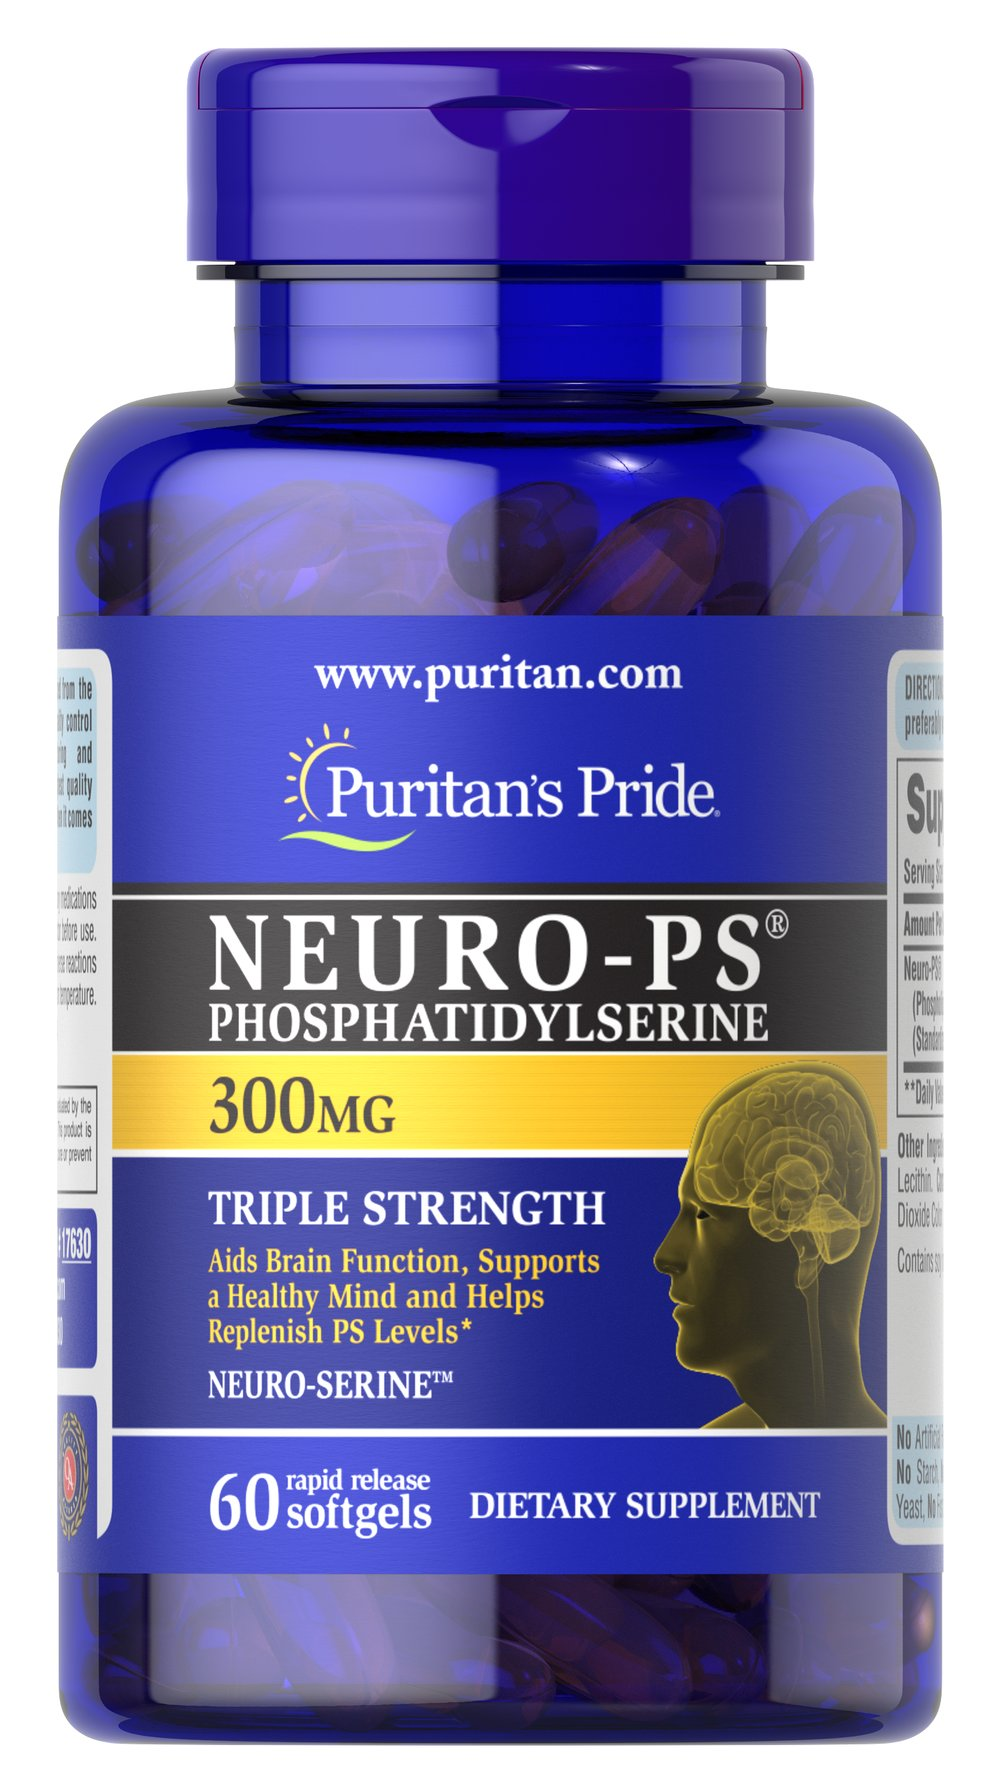 Neuro-PS 300 mg (Phosphatidylserine) Thumbnail Alternate Bottle View